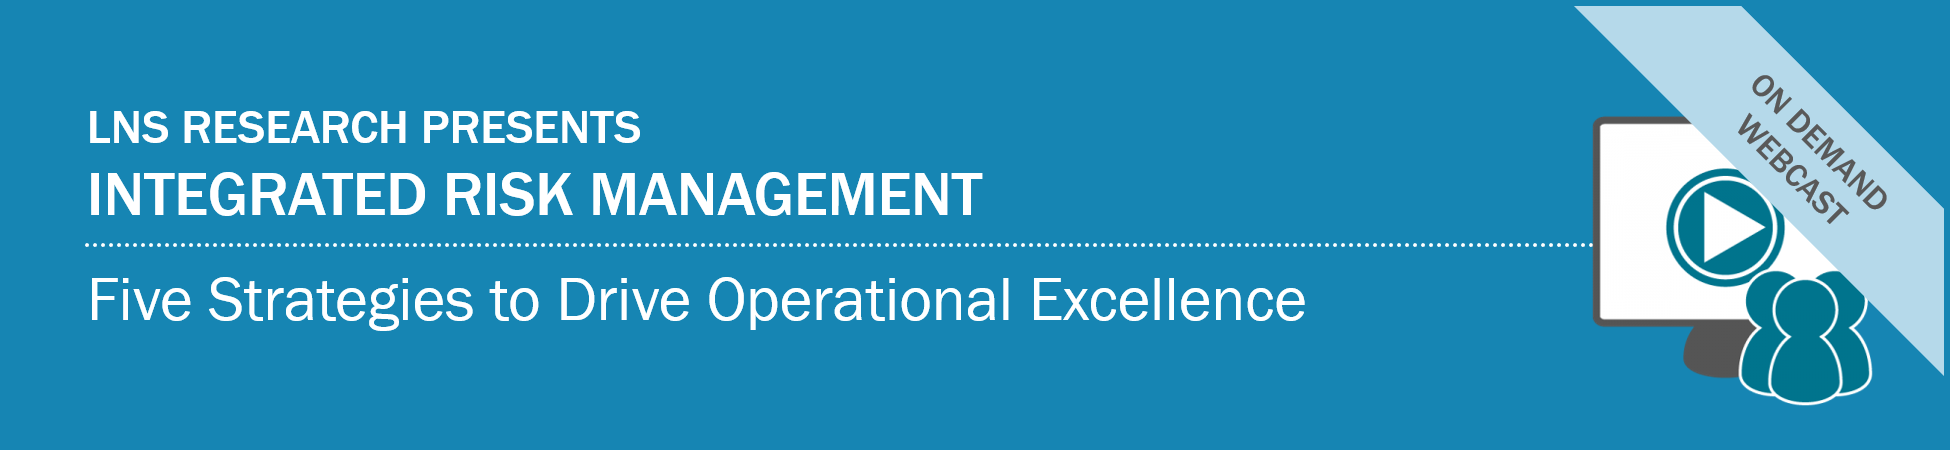 On-Demand Webcast: Integrated Risk Management: Five Strategies to Drive Operational Excellence